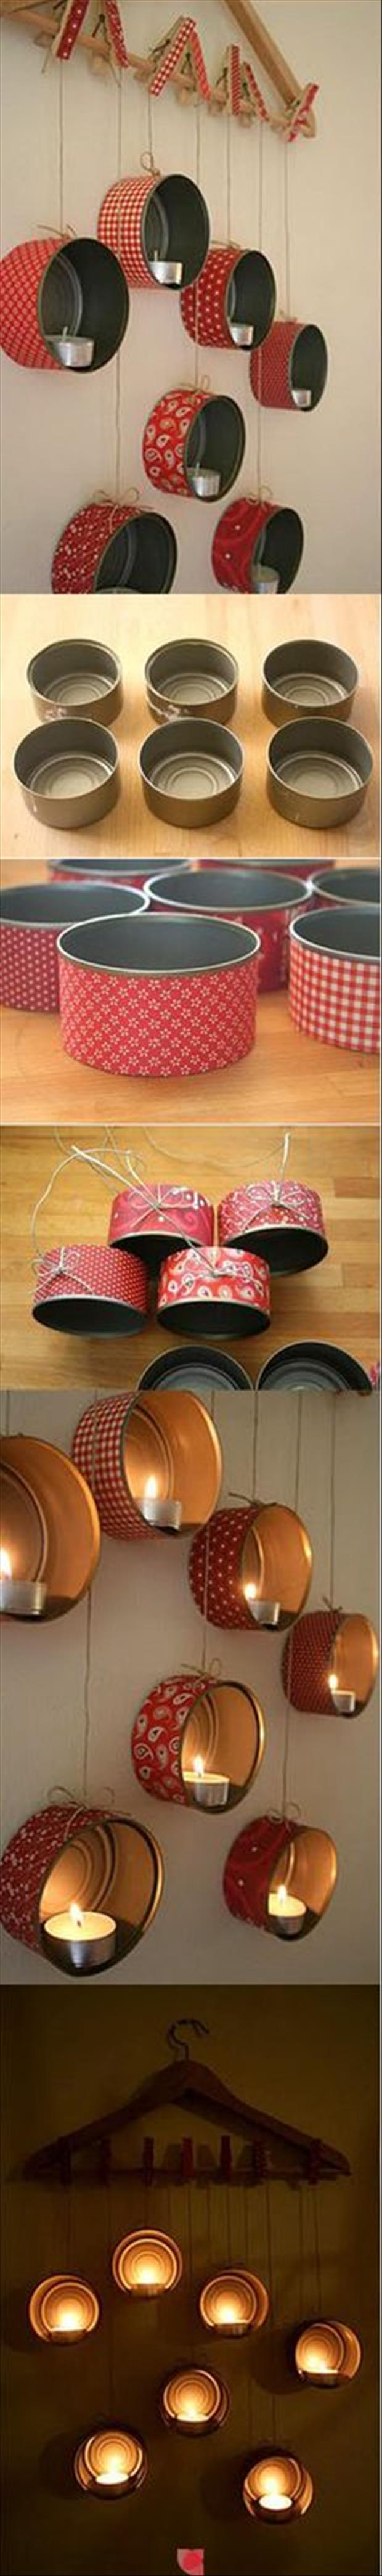 do it yourself crafts (7)